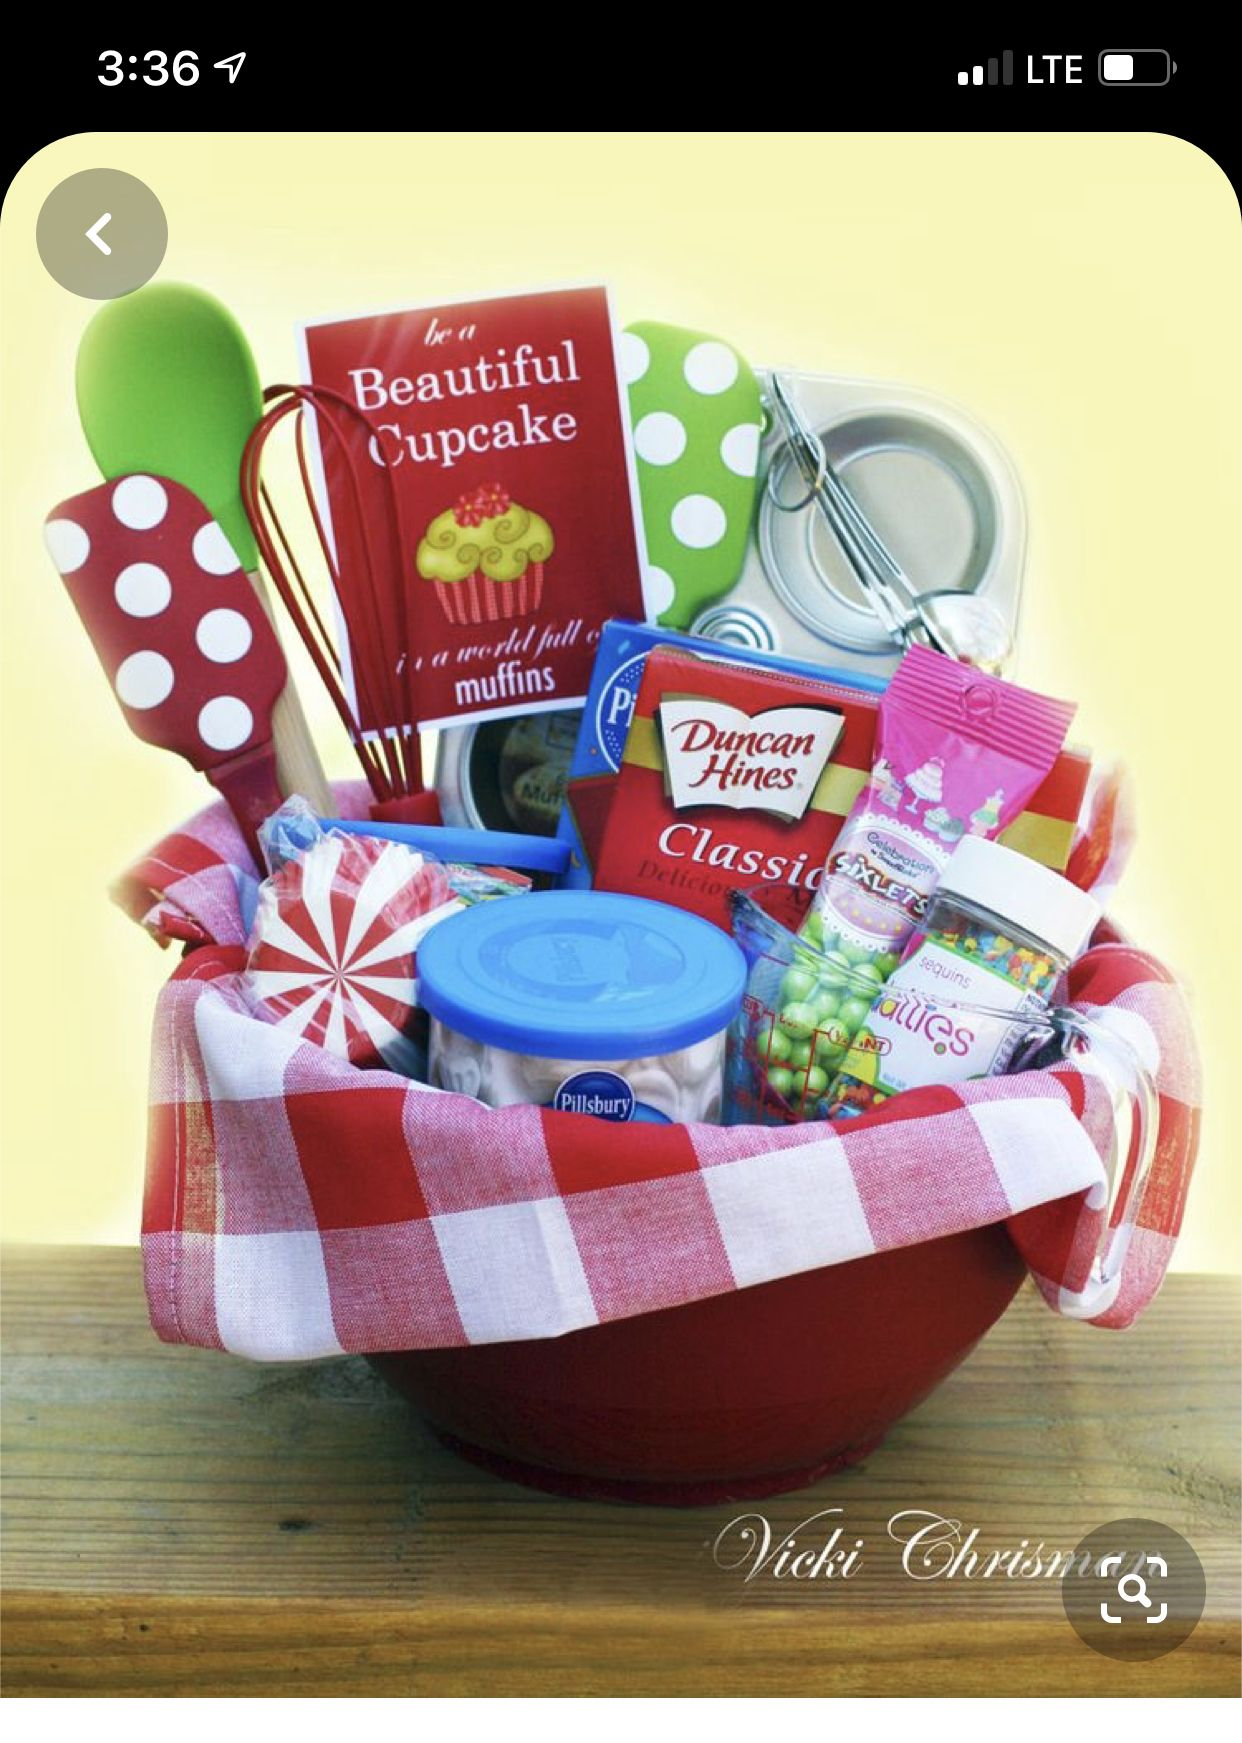 Pin By Issis Gil On Kita Ideen In 2020 Baking Gift Basket Fundraiser Baskets Perfect Gift Basket